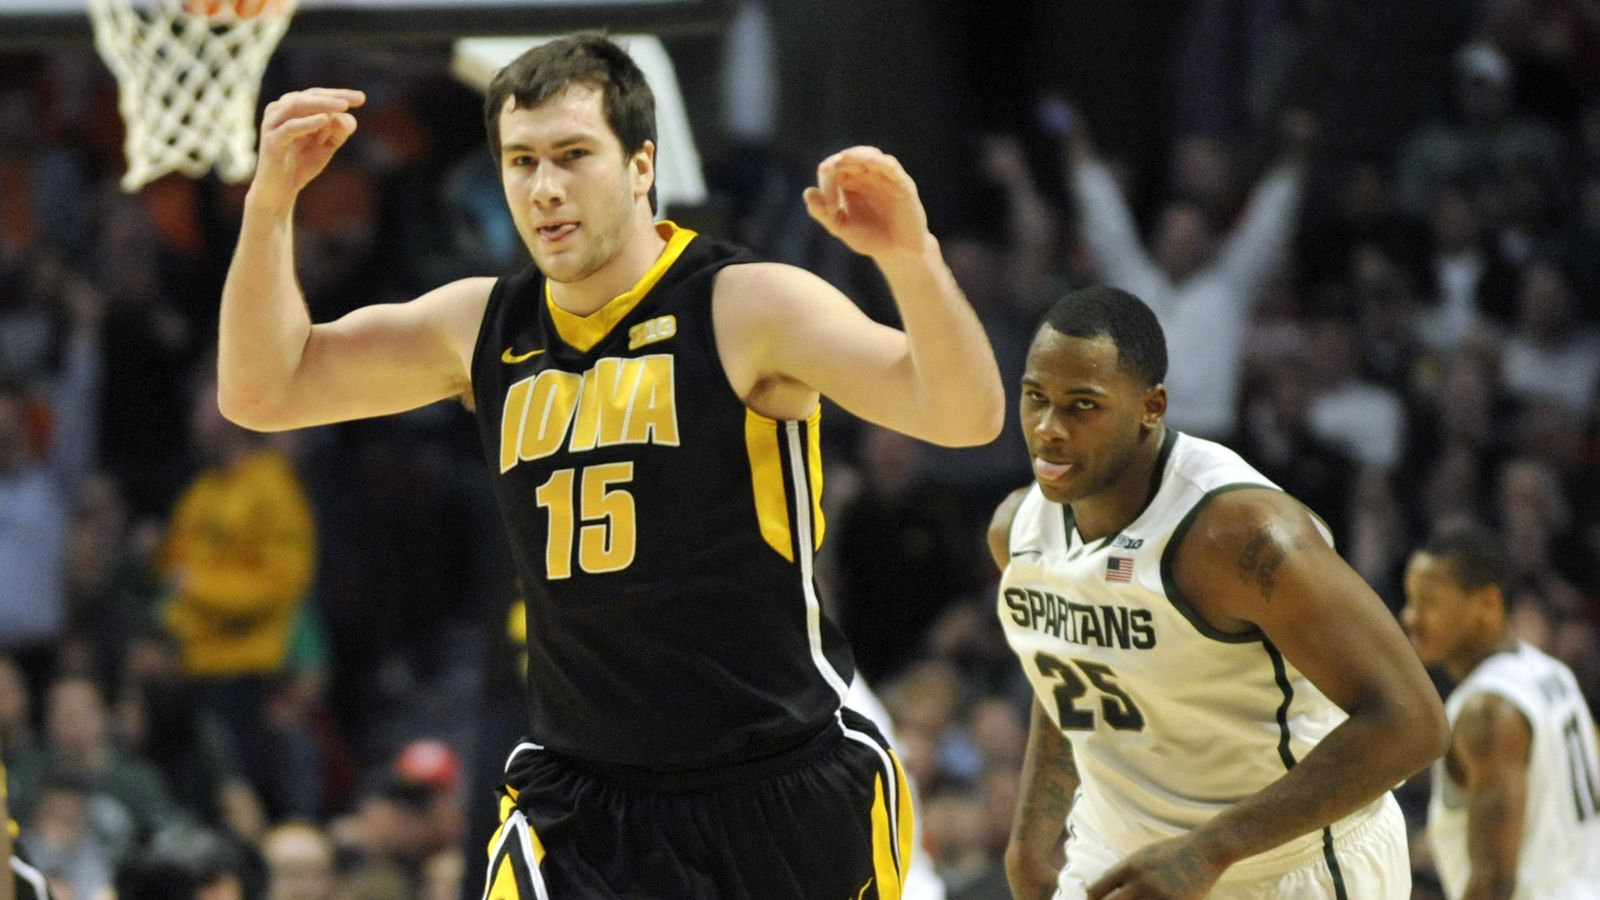 Iowa Hawkeyes NIT Schedule TV Ticket Info And More